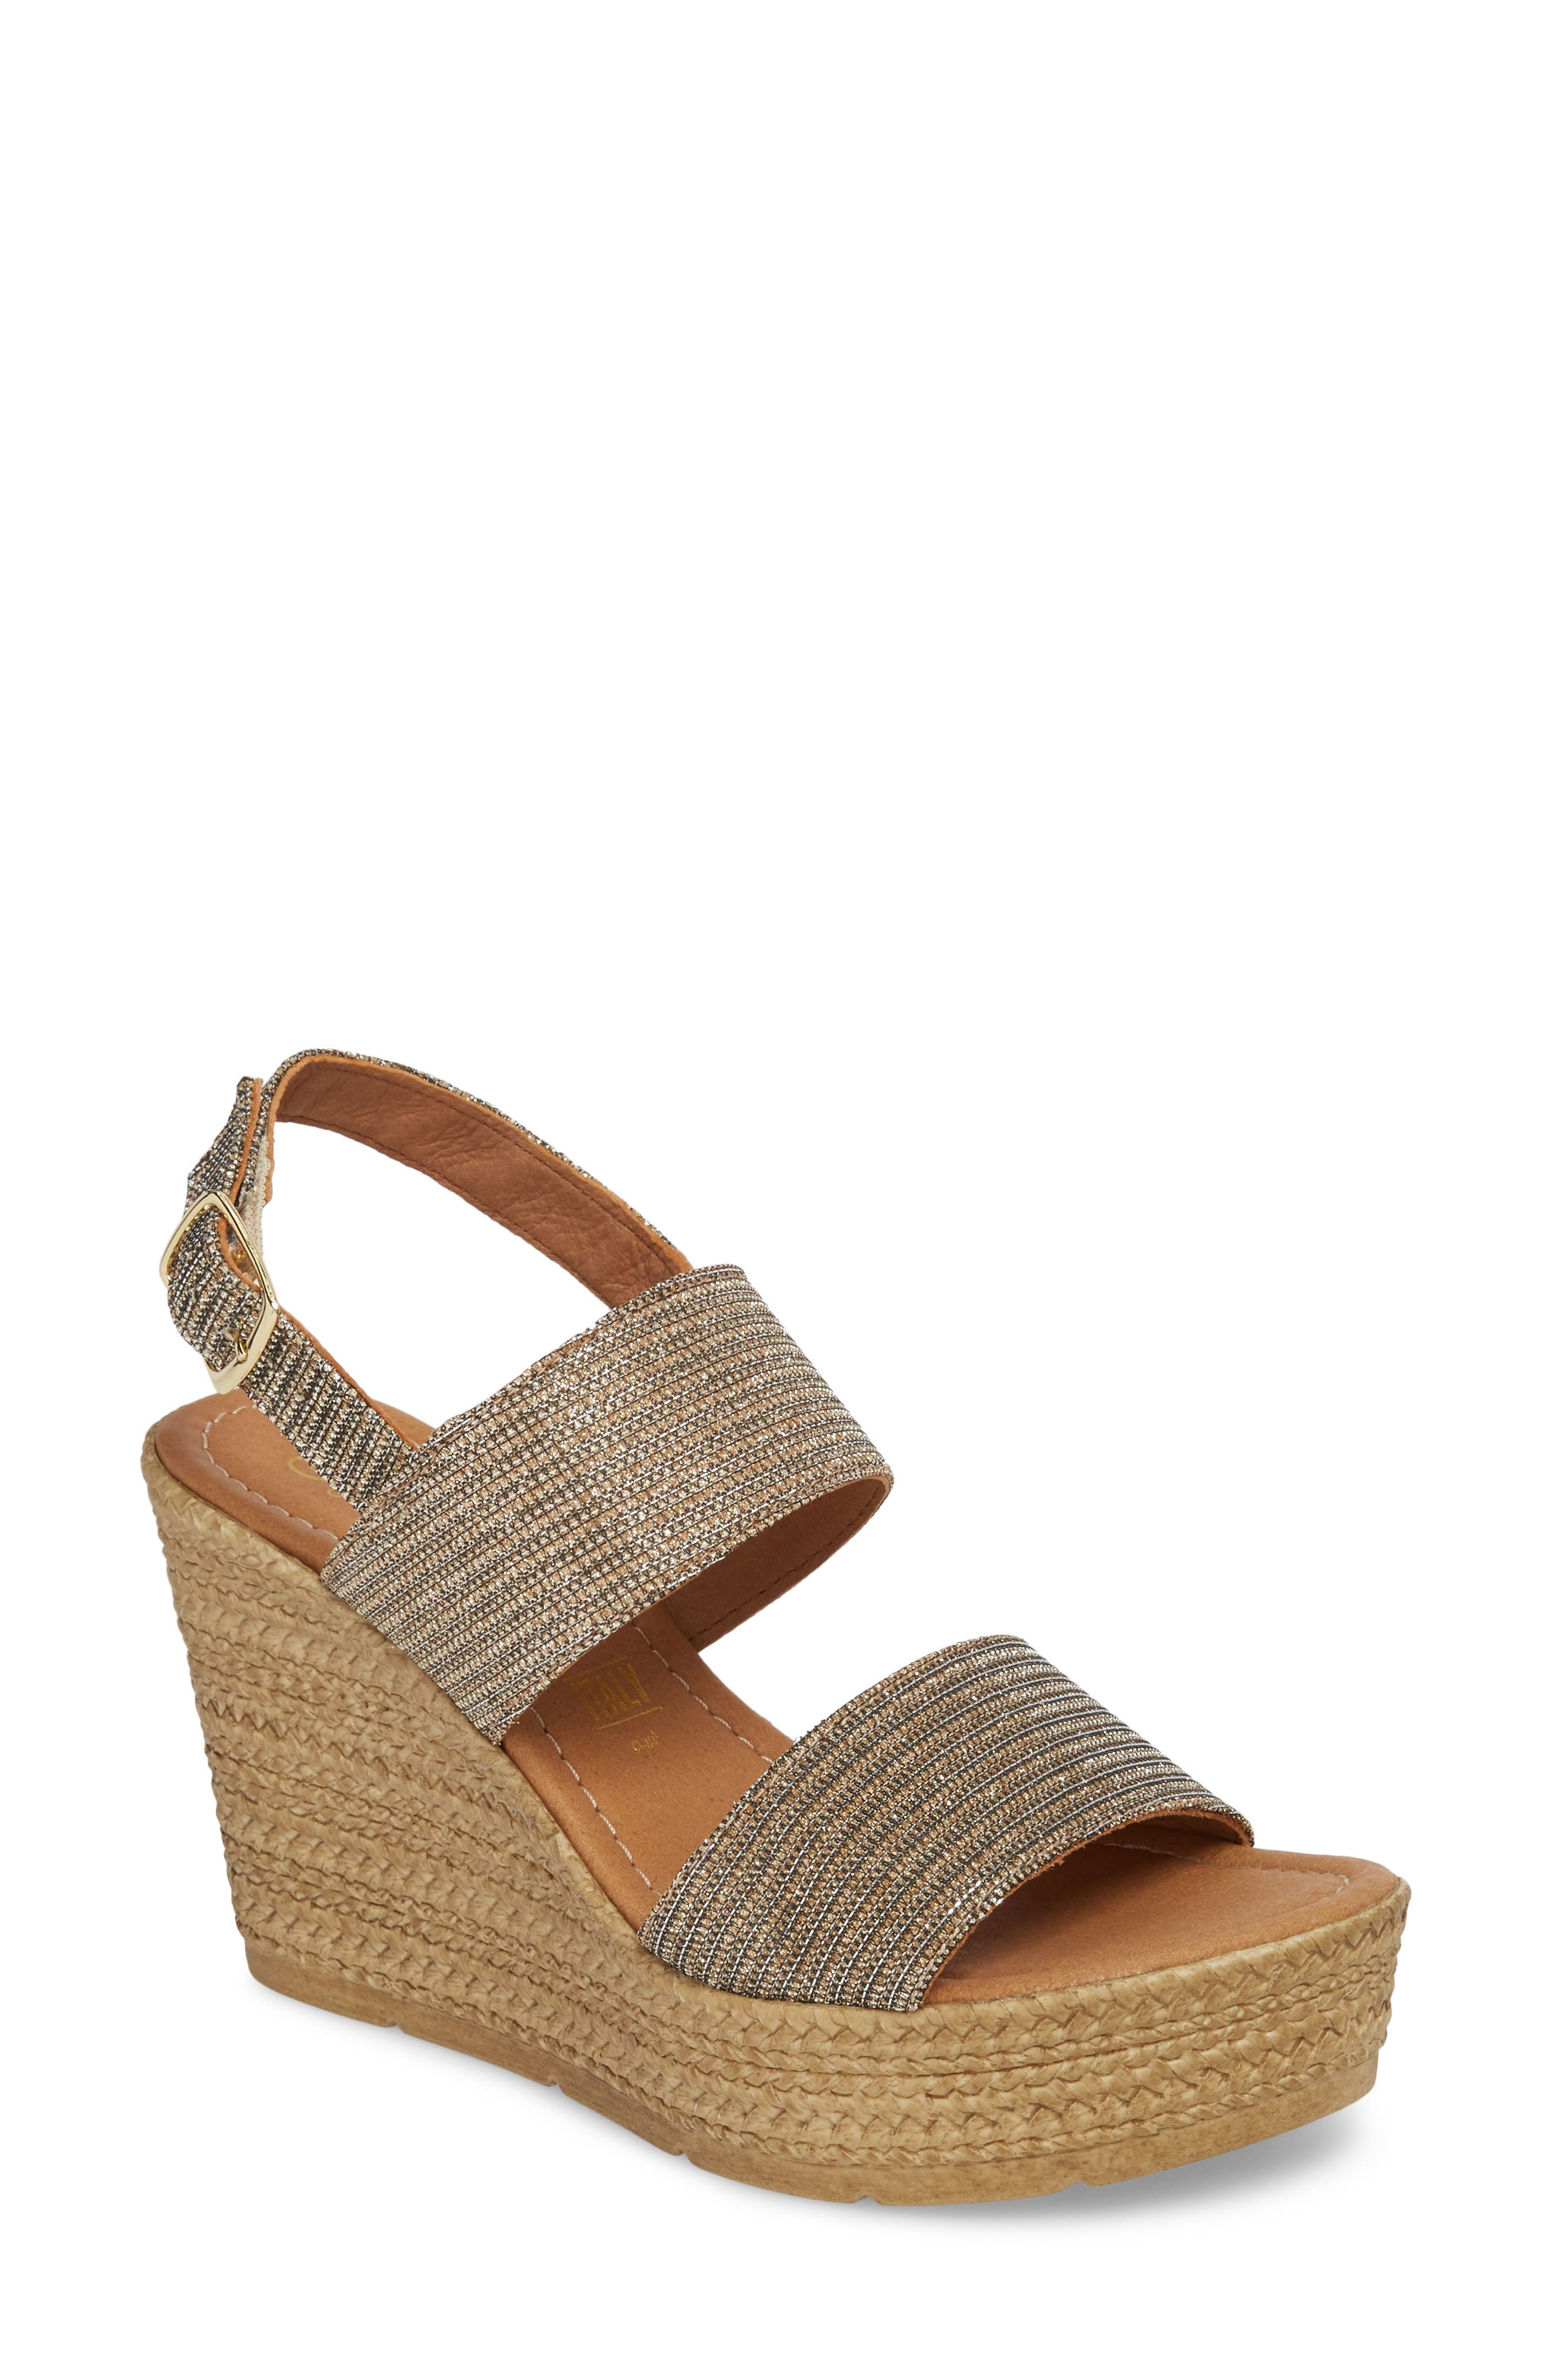 Downtime Wedge Sandal,                             Main thumbnail 1, color,                             220